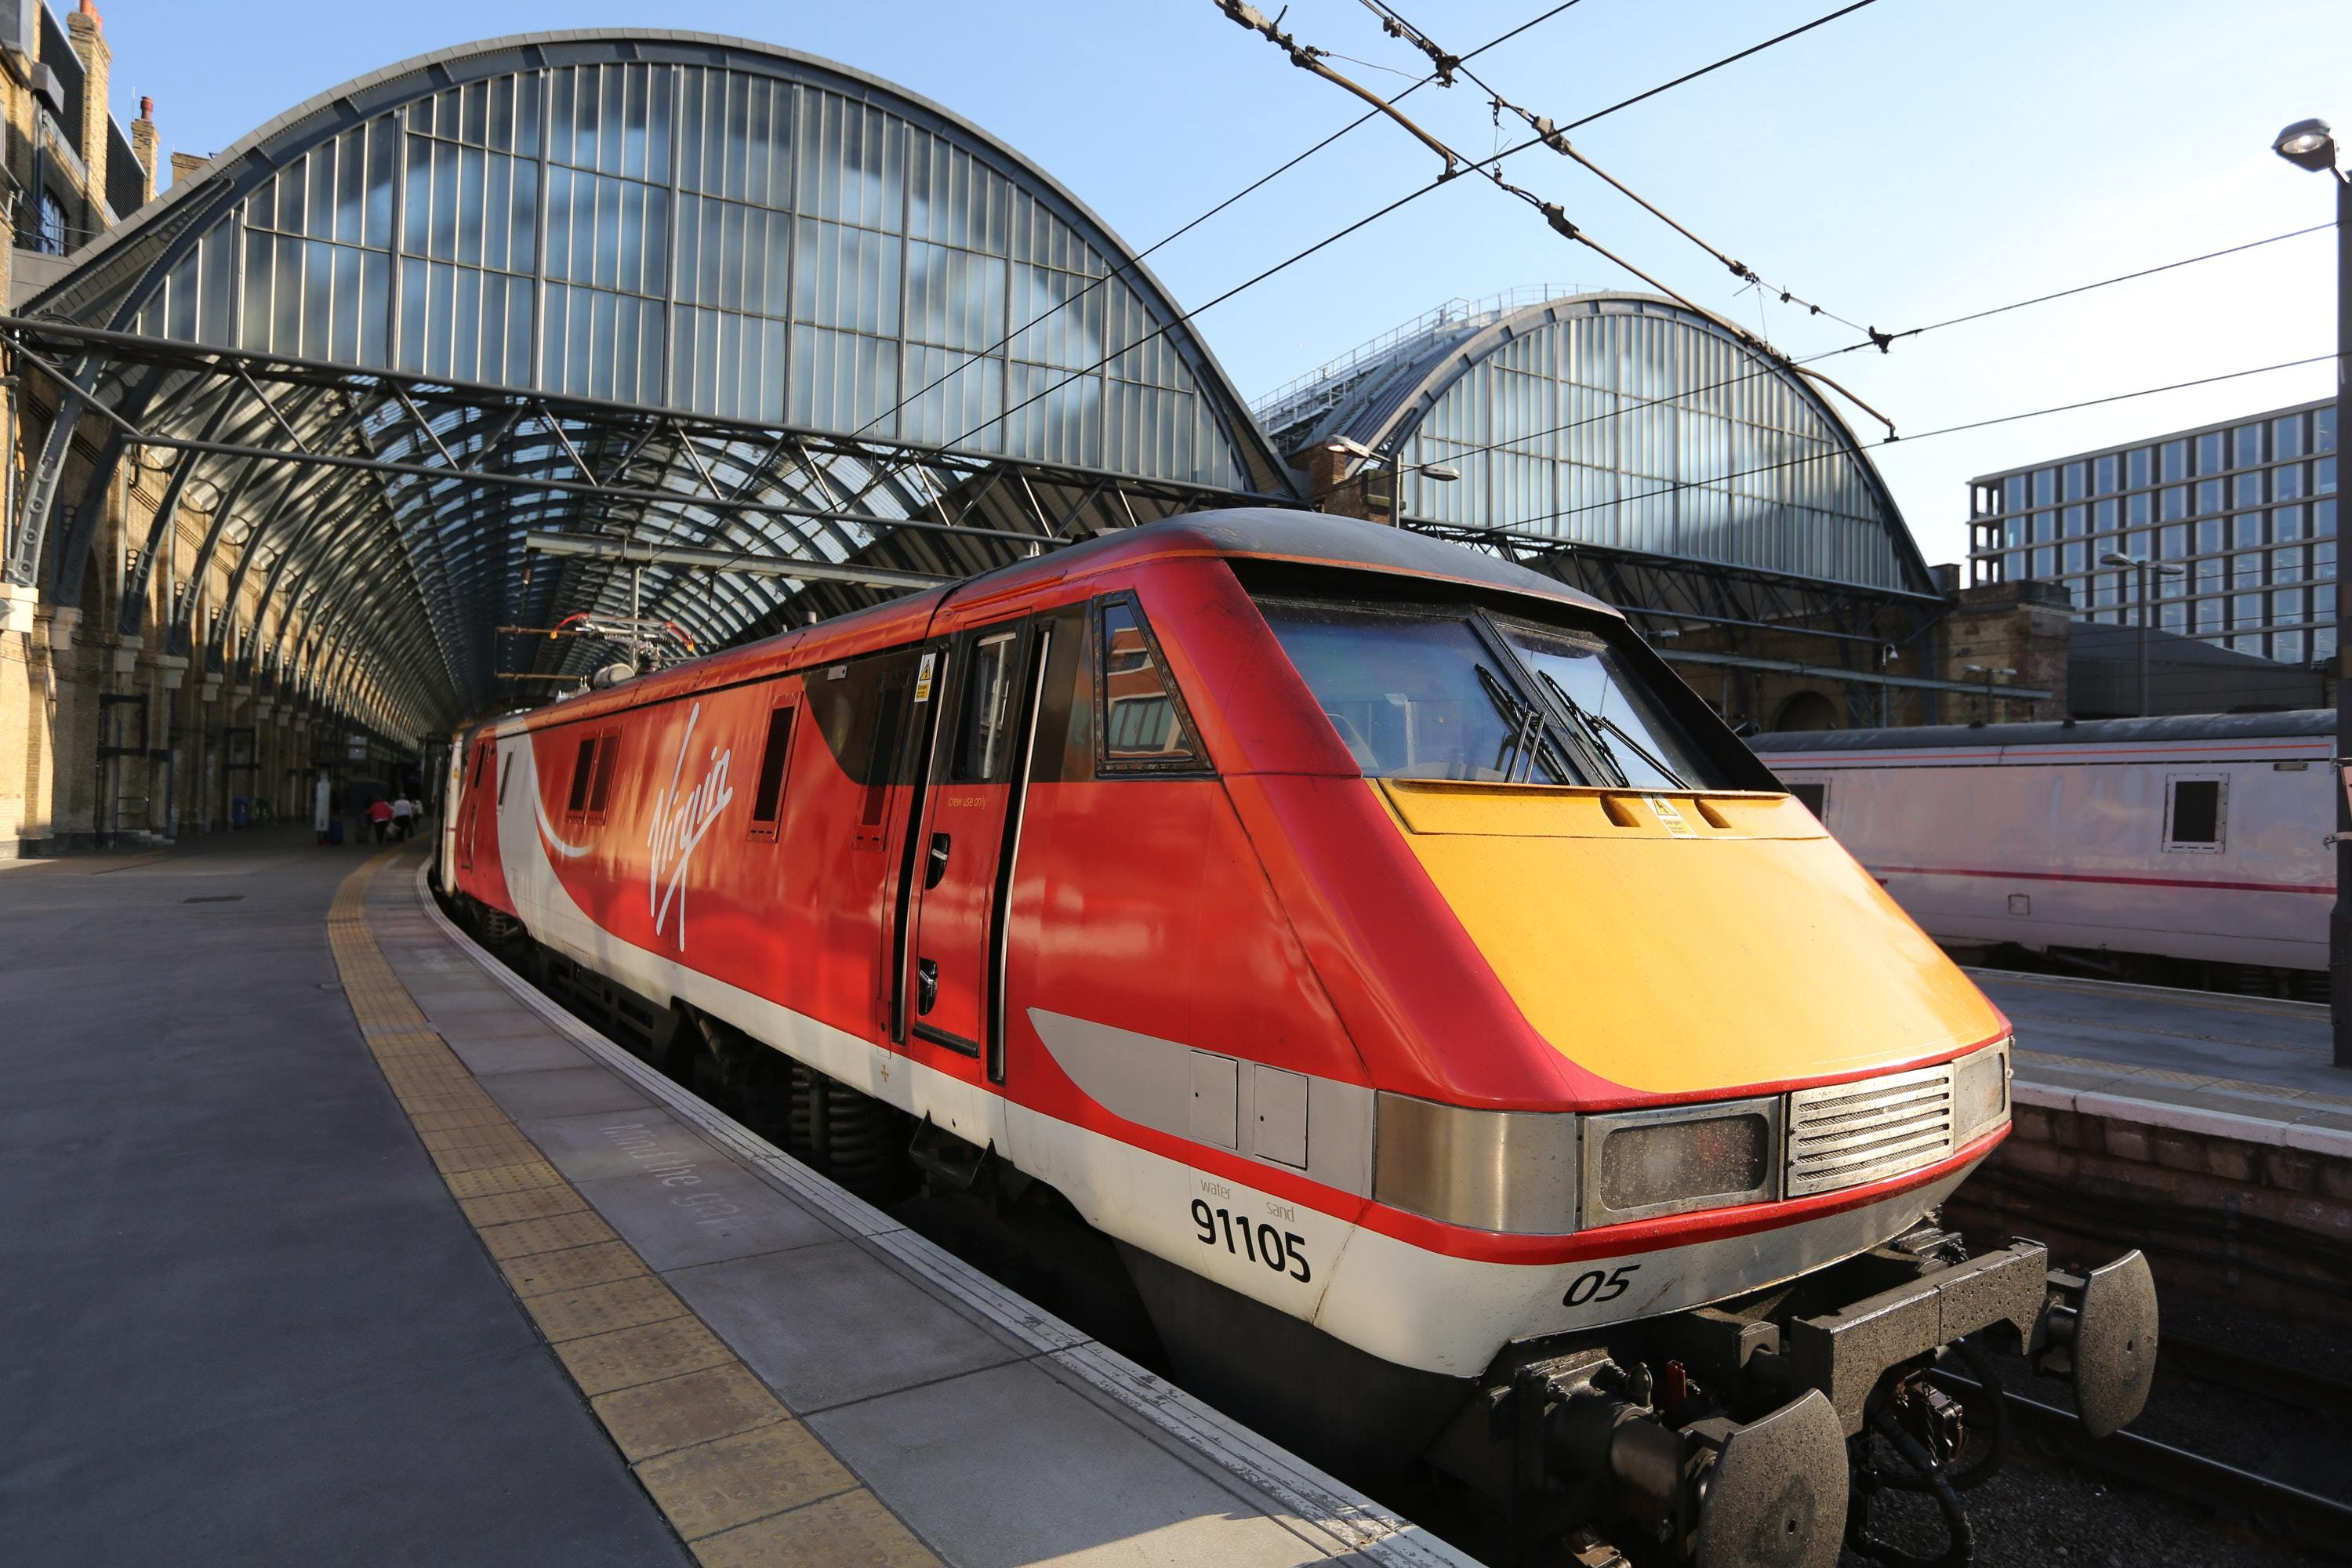 Virgin East Coast rail workers to vote on strike action - Sunday Post